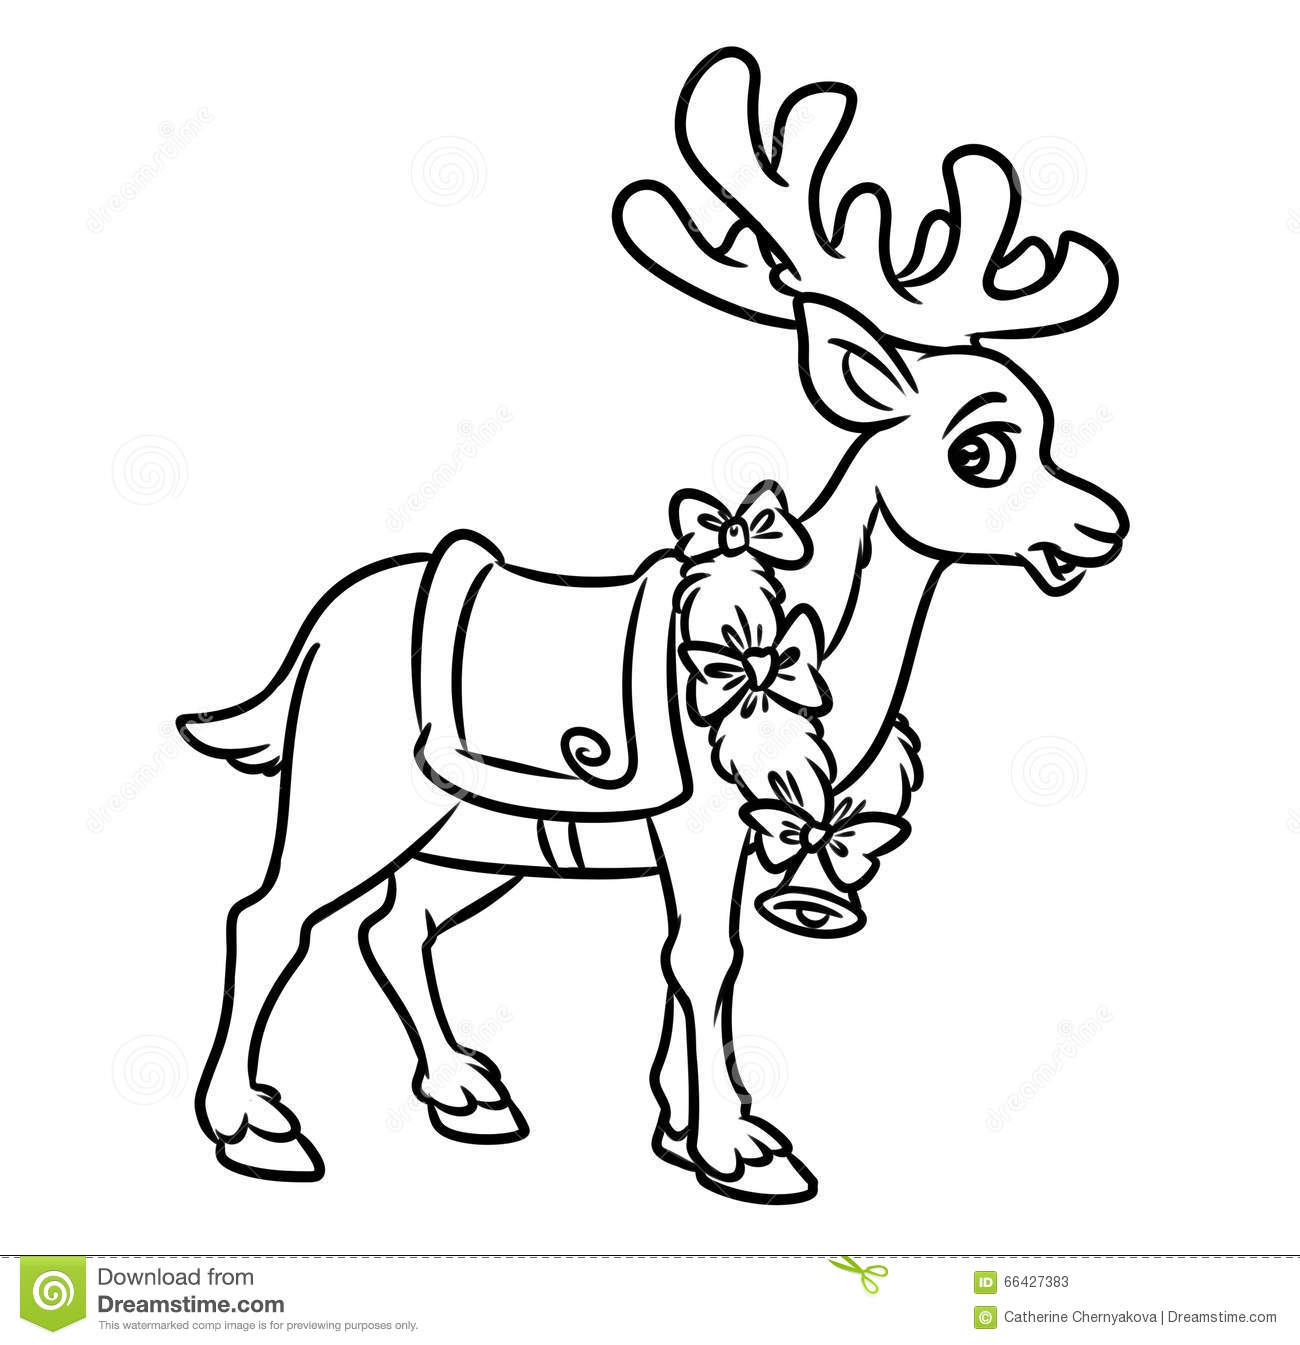 Santa Coloring Pages - Best Coloring Pages For Kids | 1345x1300